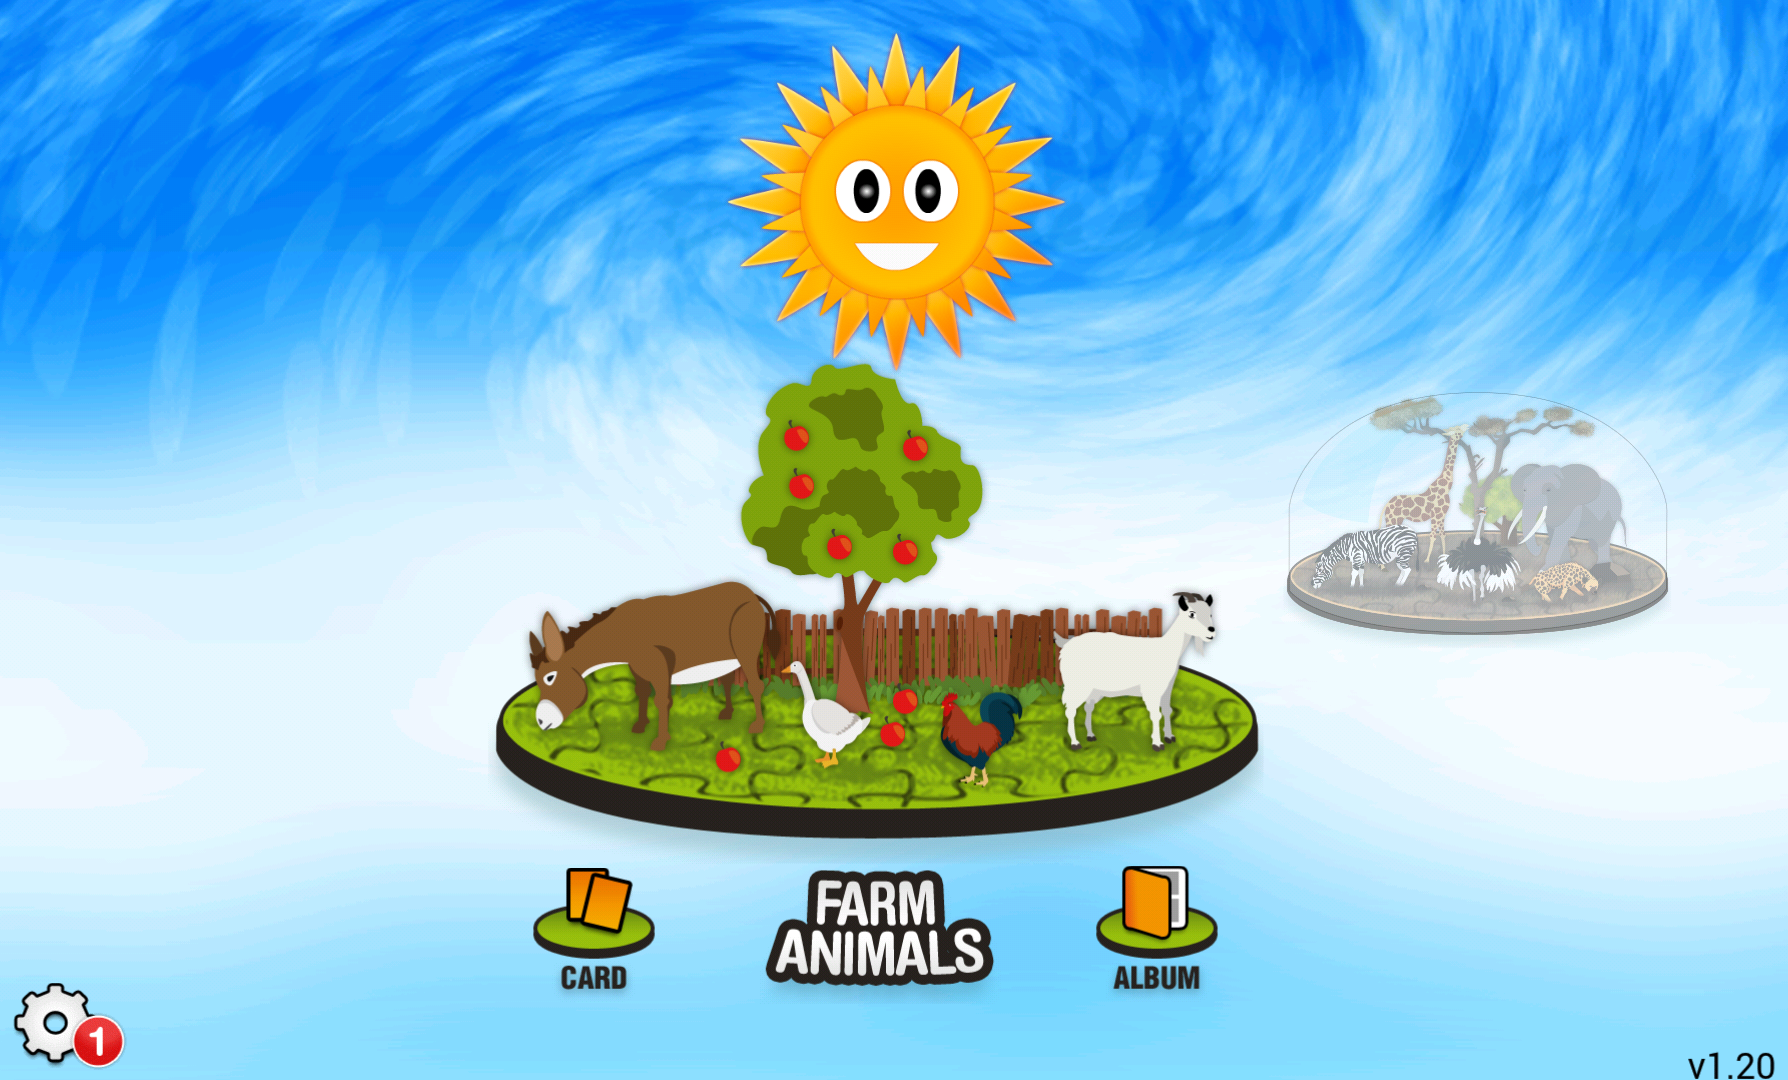 Animals: educational kids game Android Game Review - Lots to See and Do